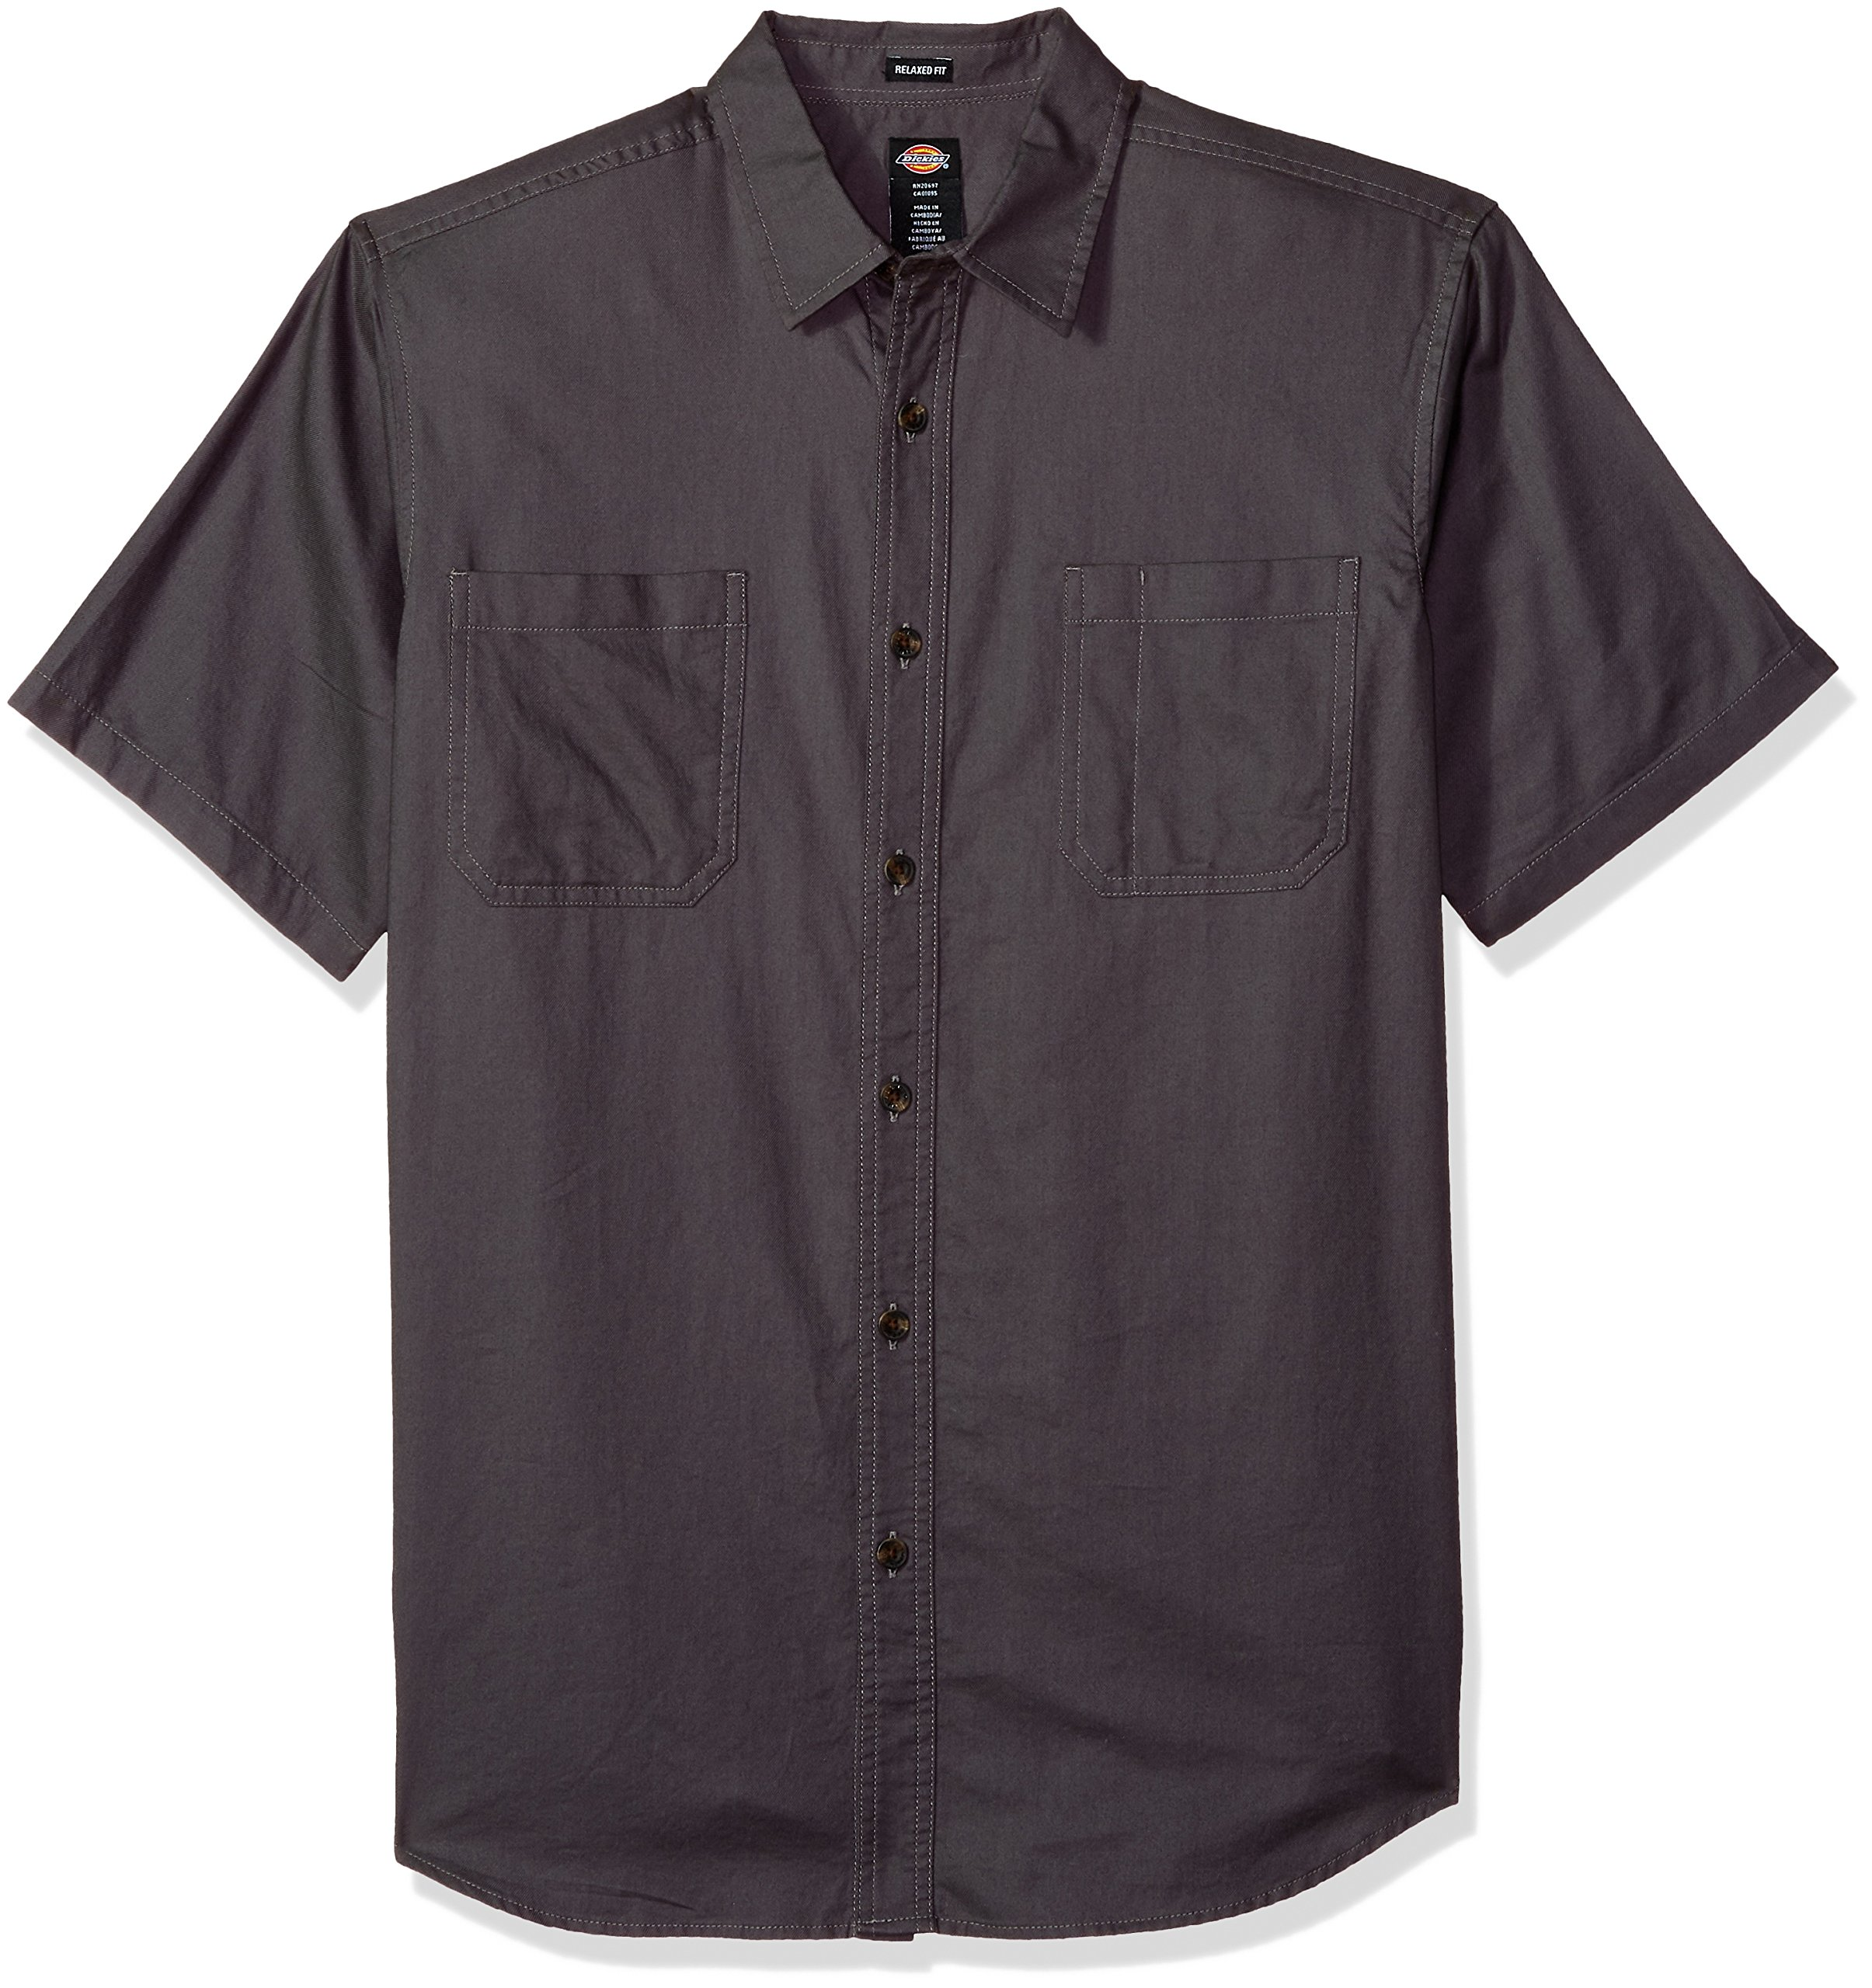 Dickies Men's Relaxed Fit Solid Short Sleeve Shirt, Charcoal, 2X